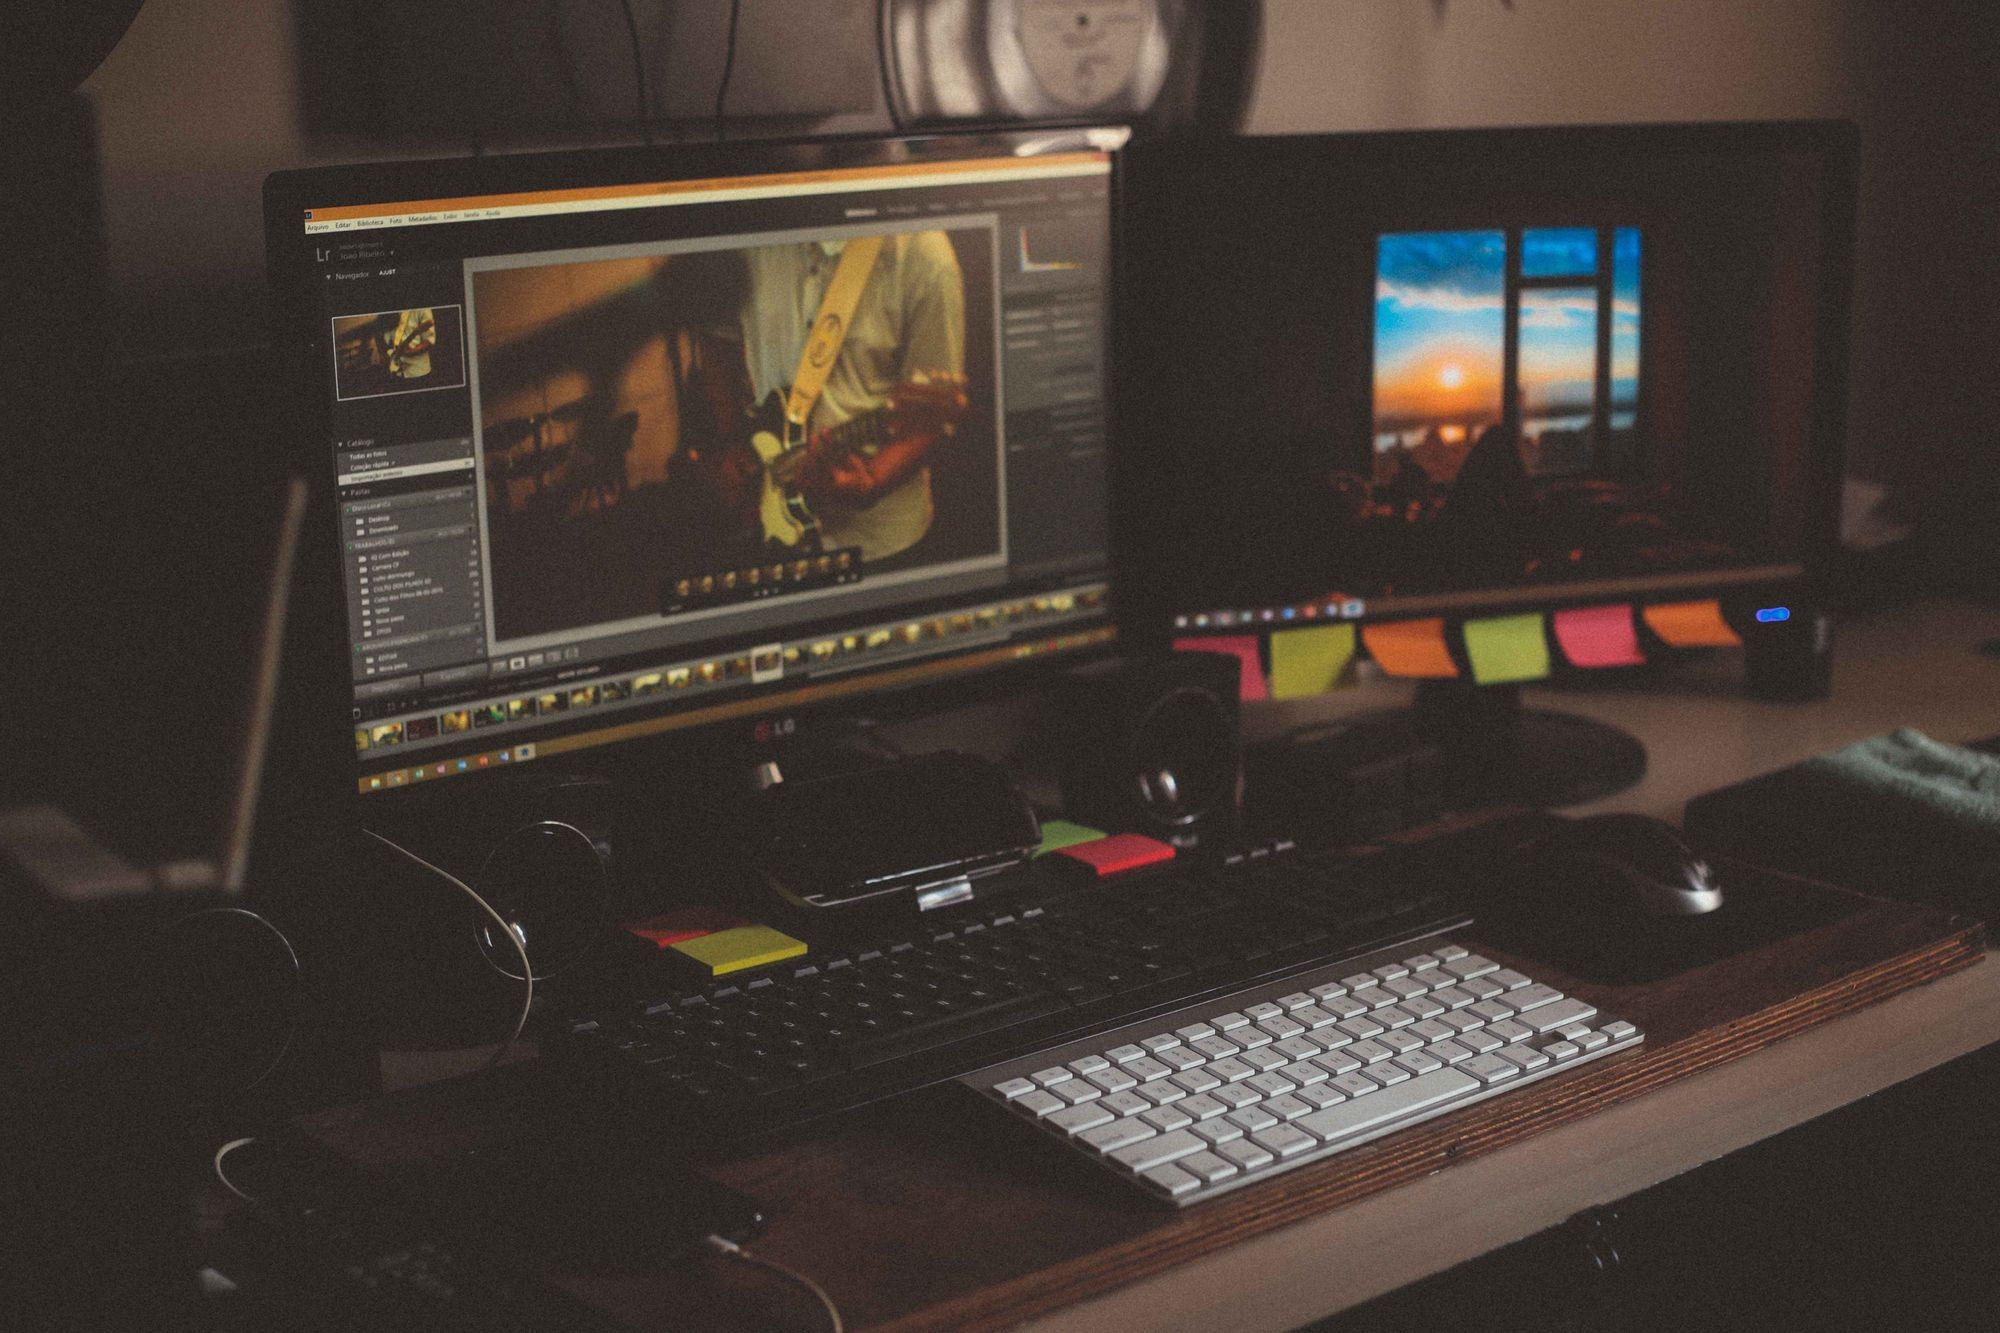 Top 3 Free Video Editing Software for Windows